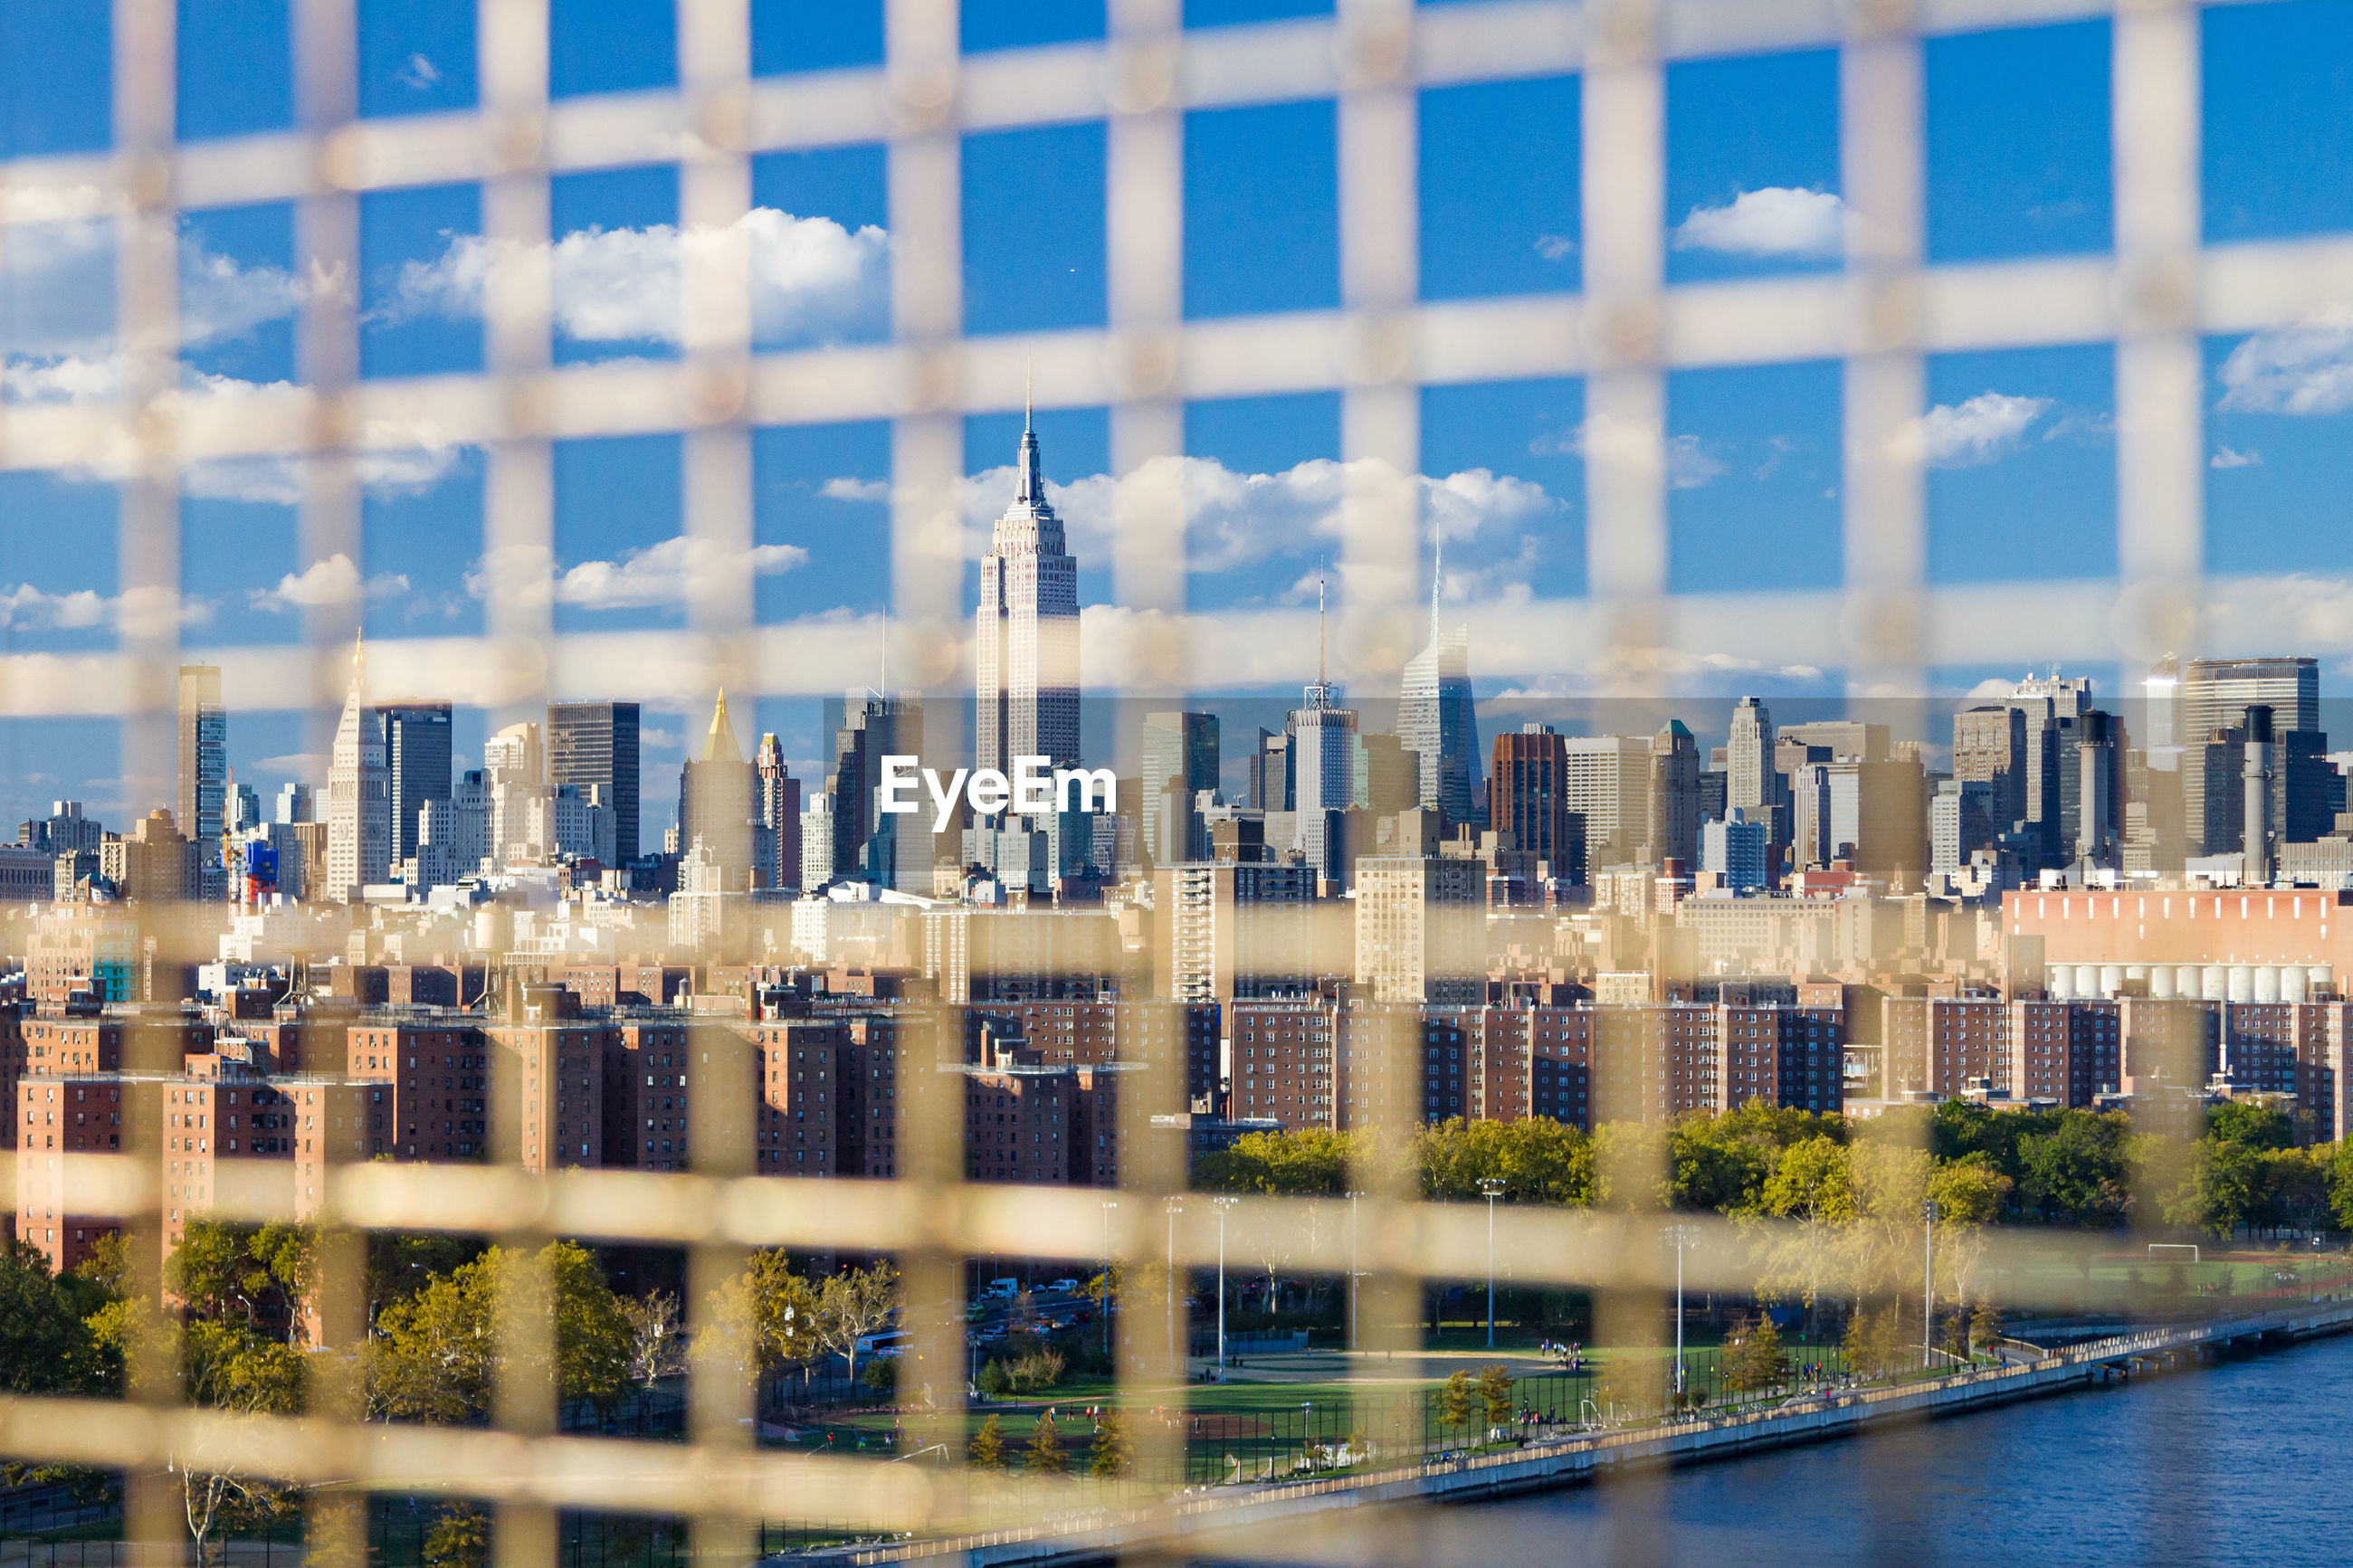 Buildings in city seen through fence